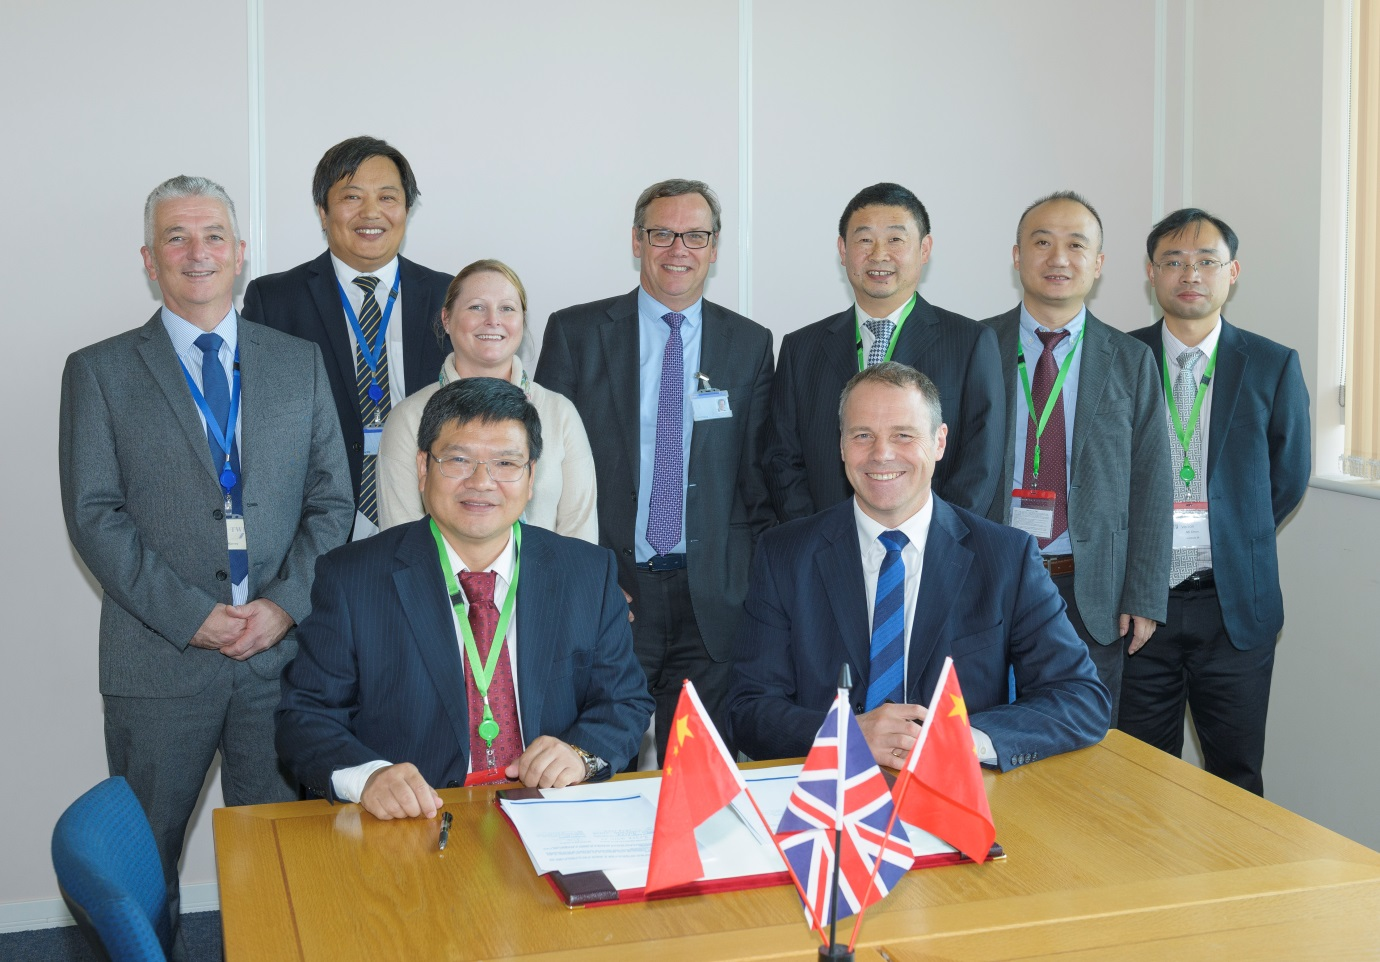 Dr Paul Woollin, director of research at TWI, signed the membership agreement with Mr Hulin Wu, chief executive of SITE